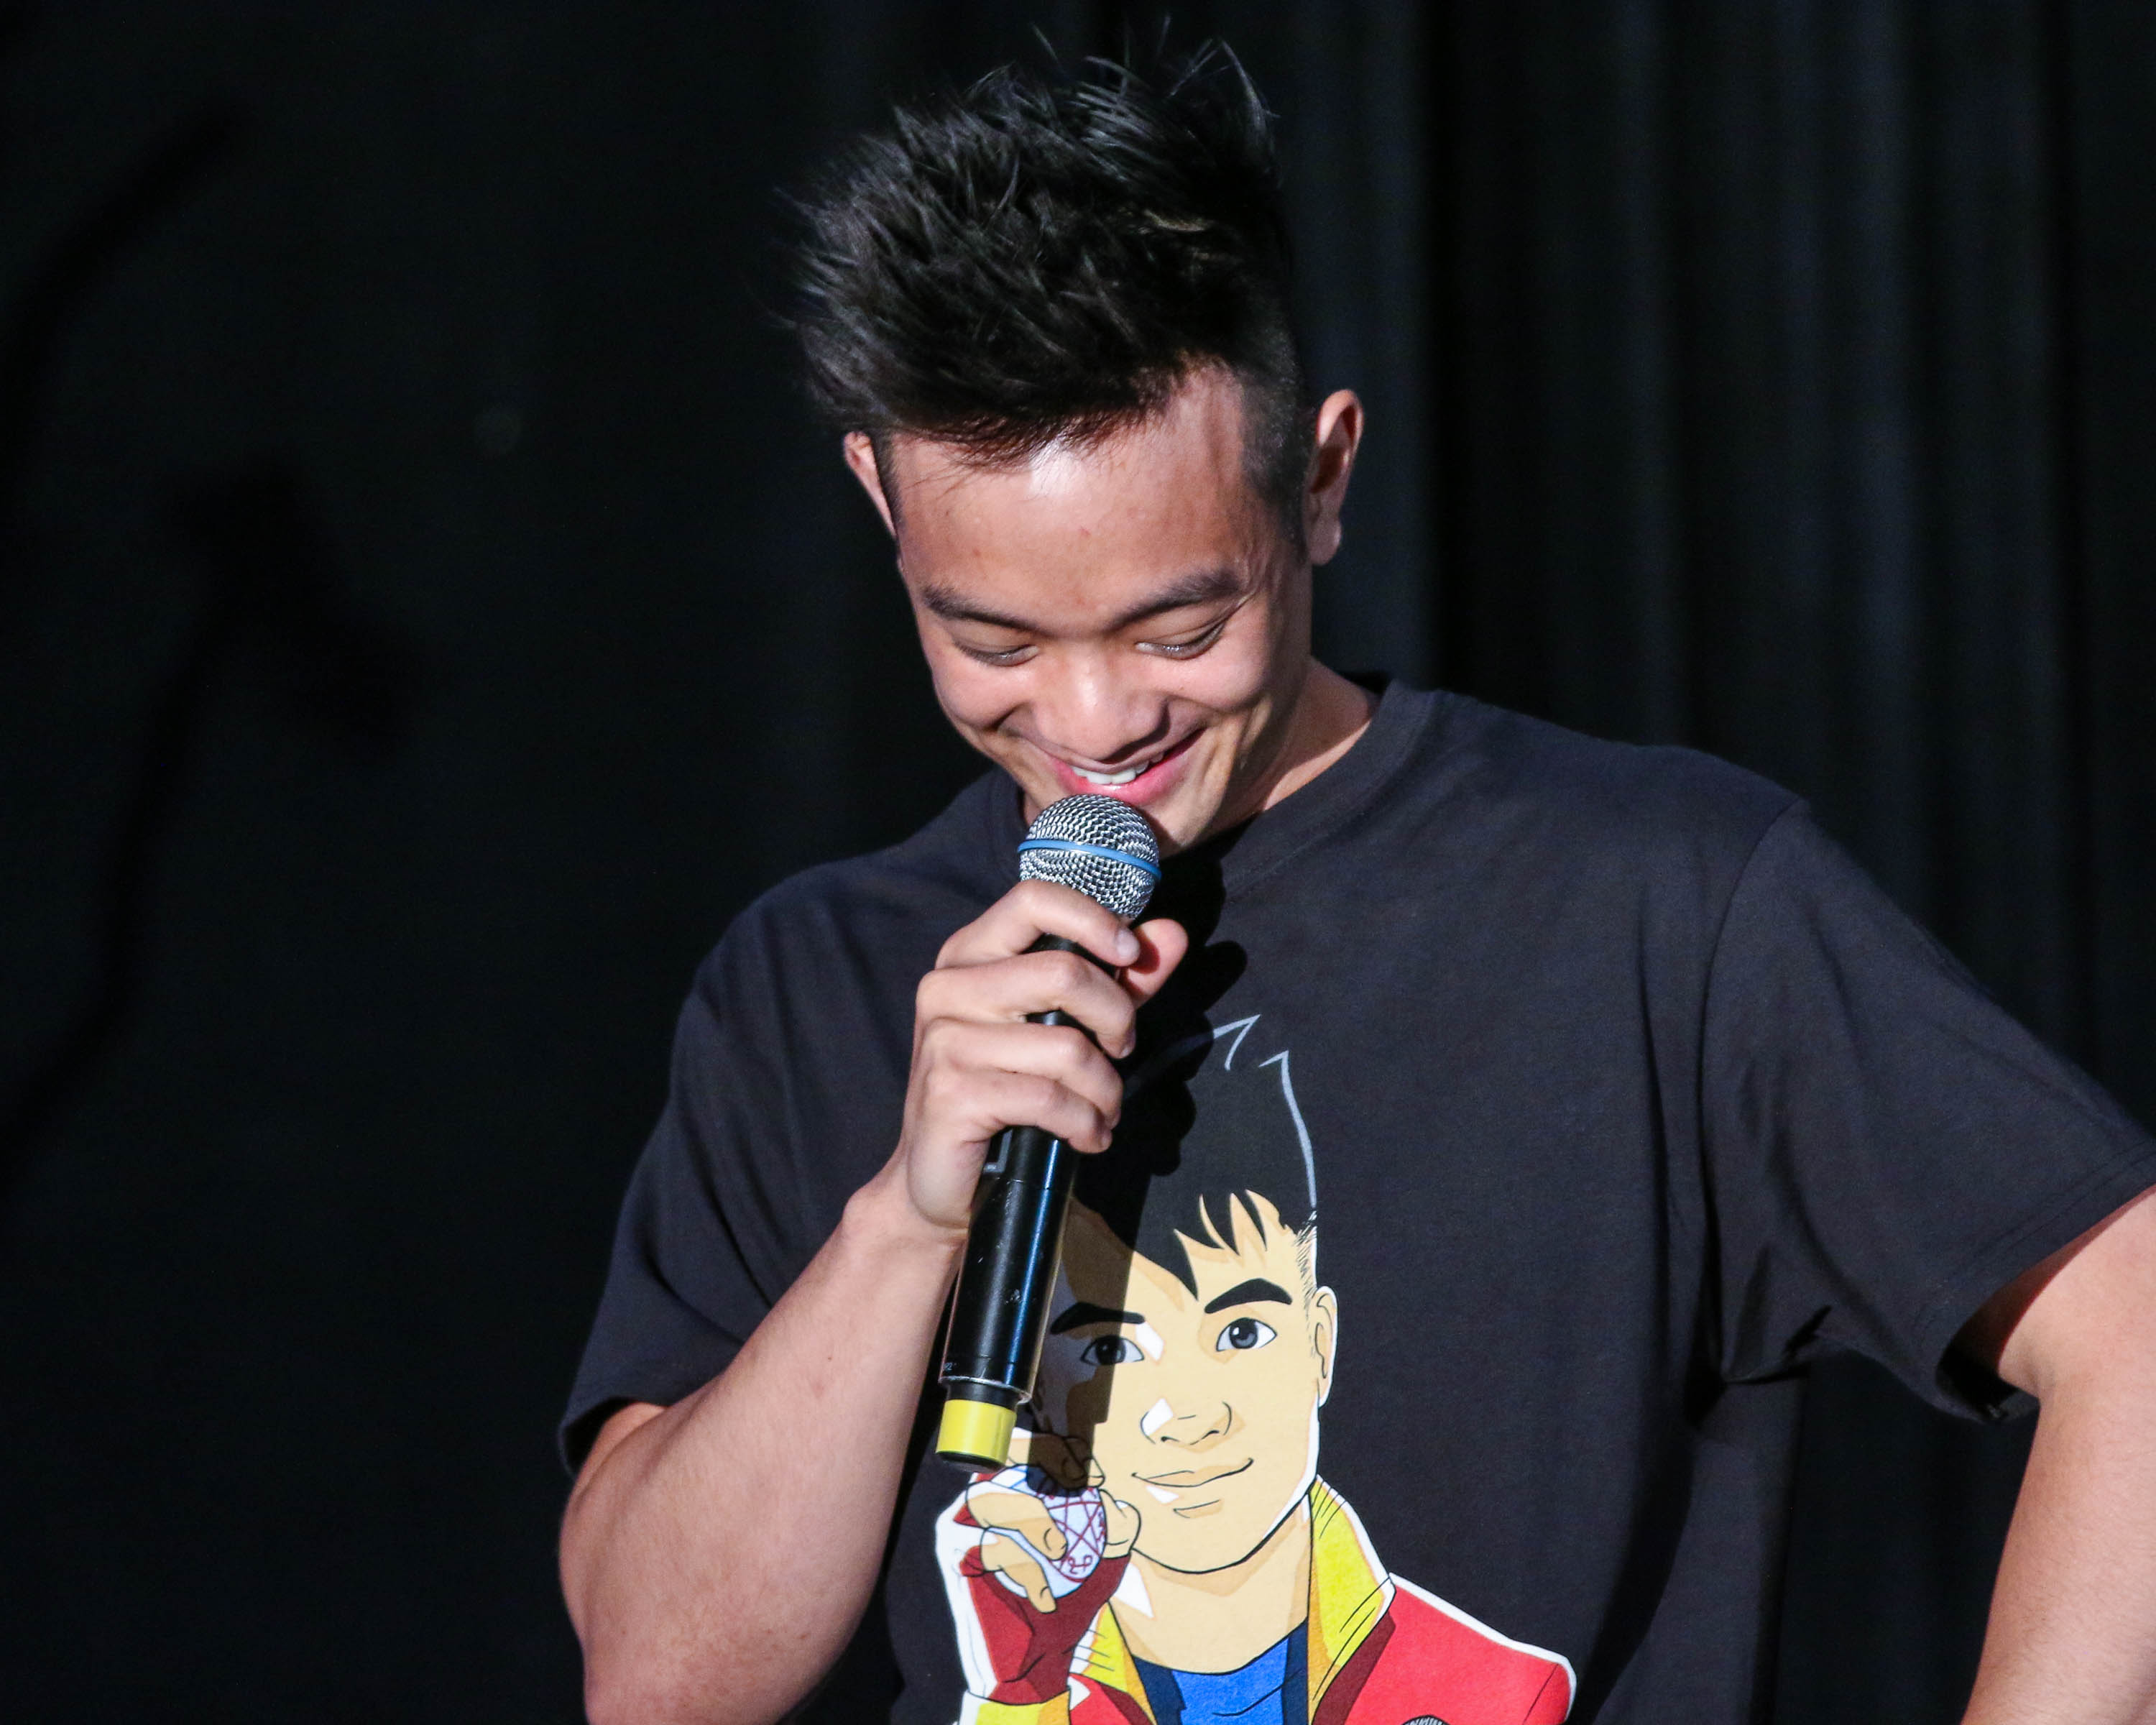 kevin tran osric chau of supernatural talking